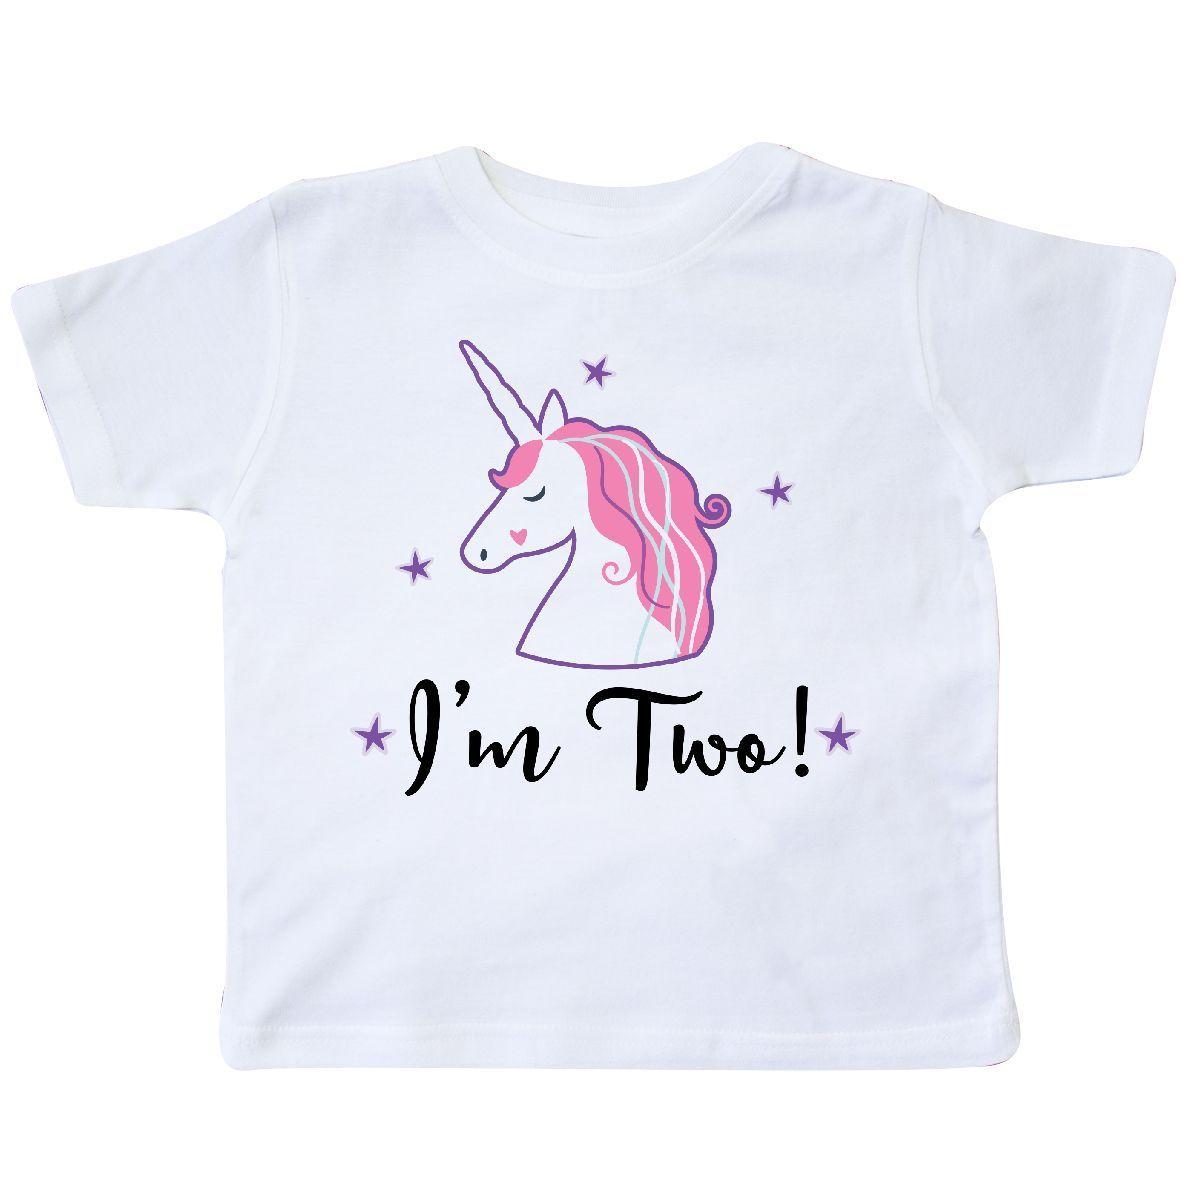 Inktastic 2nd Birthday Girls Unicorn Party Toddler T Shirt Two 2 Year Old Childs Funny Unisex Casual Tee Gift Printing Of All That Tshirt From